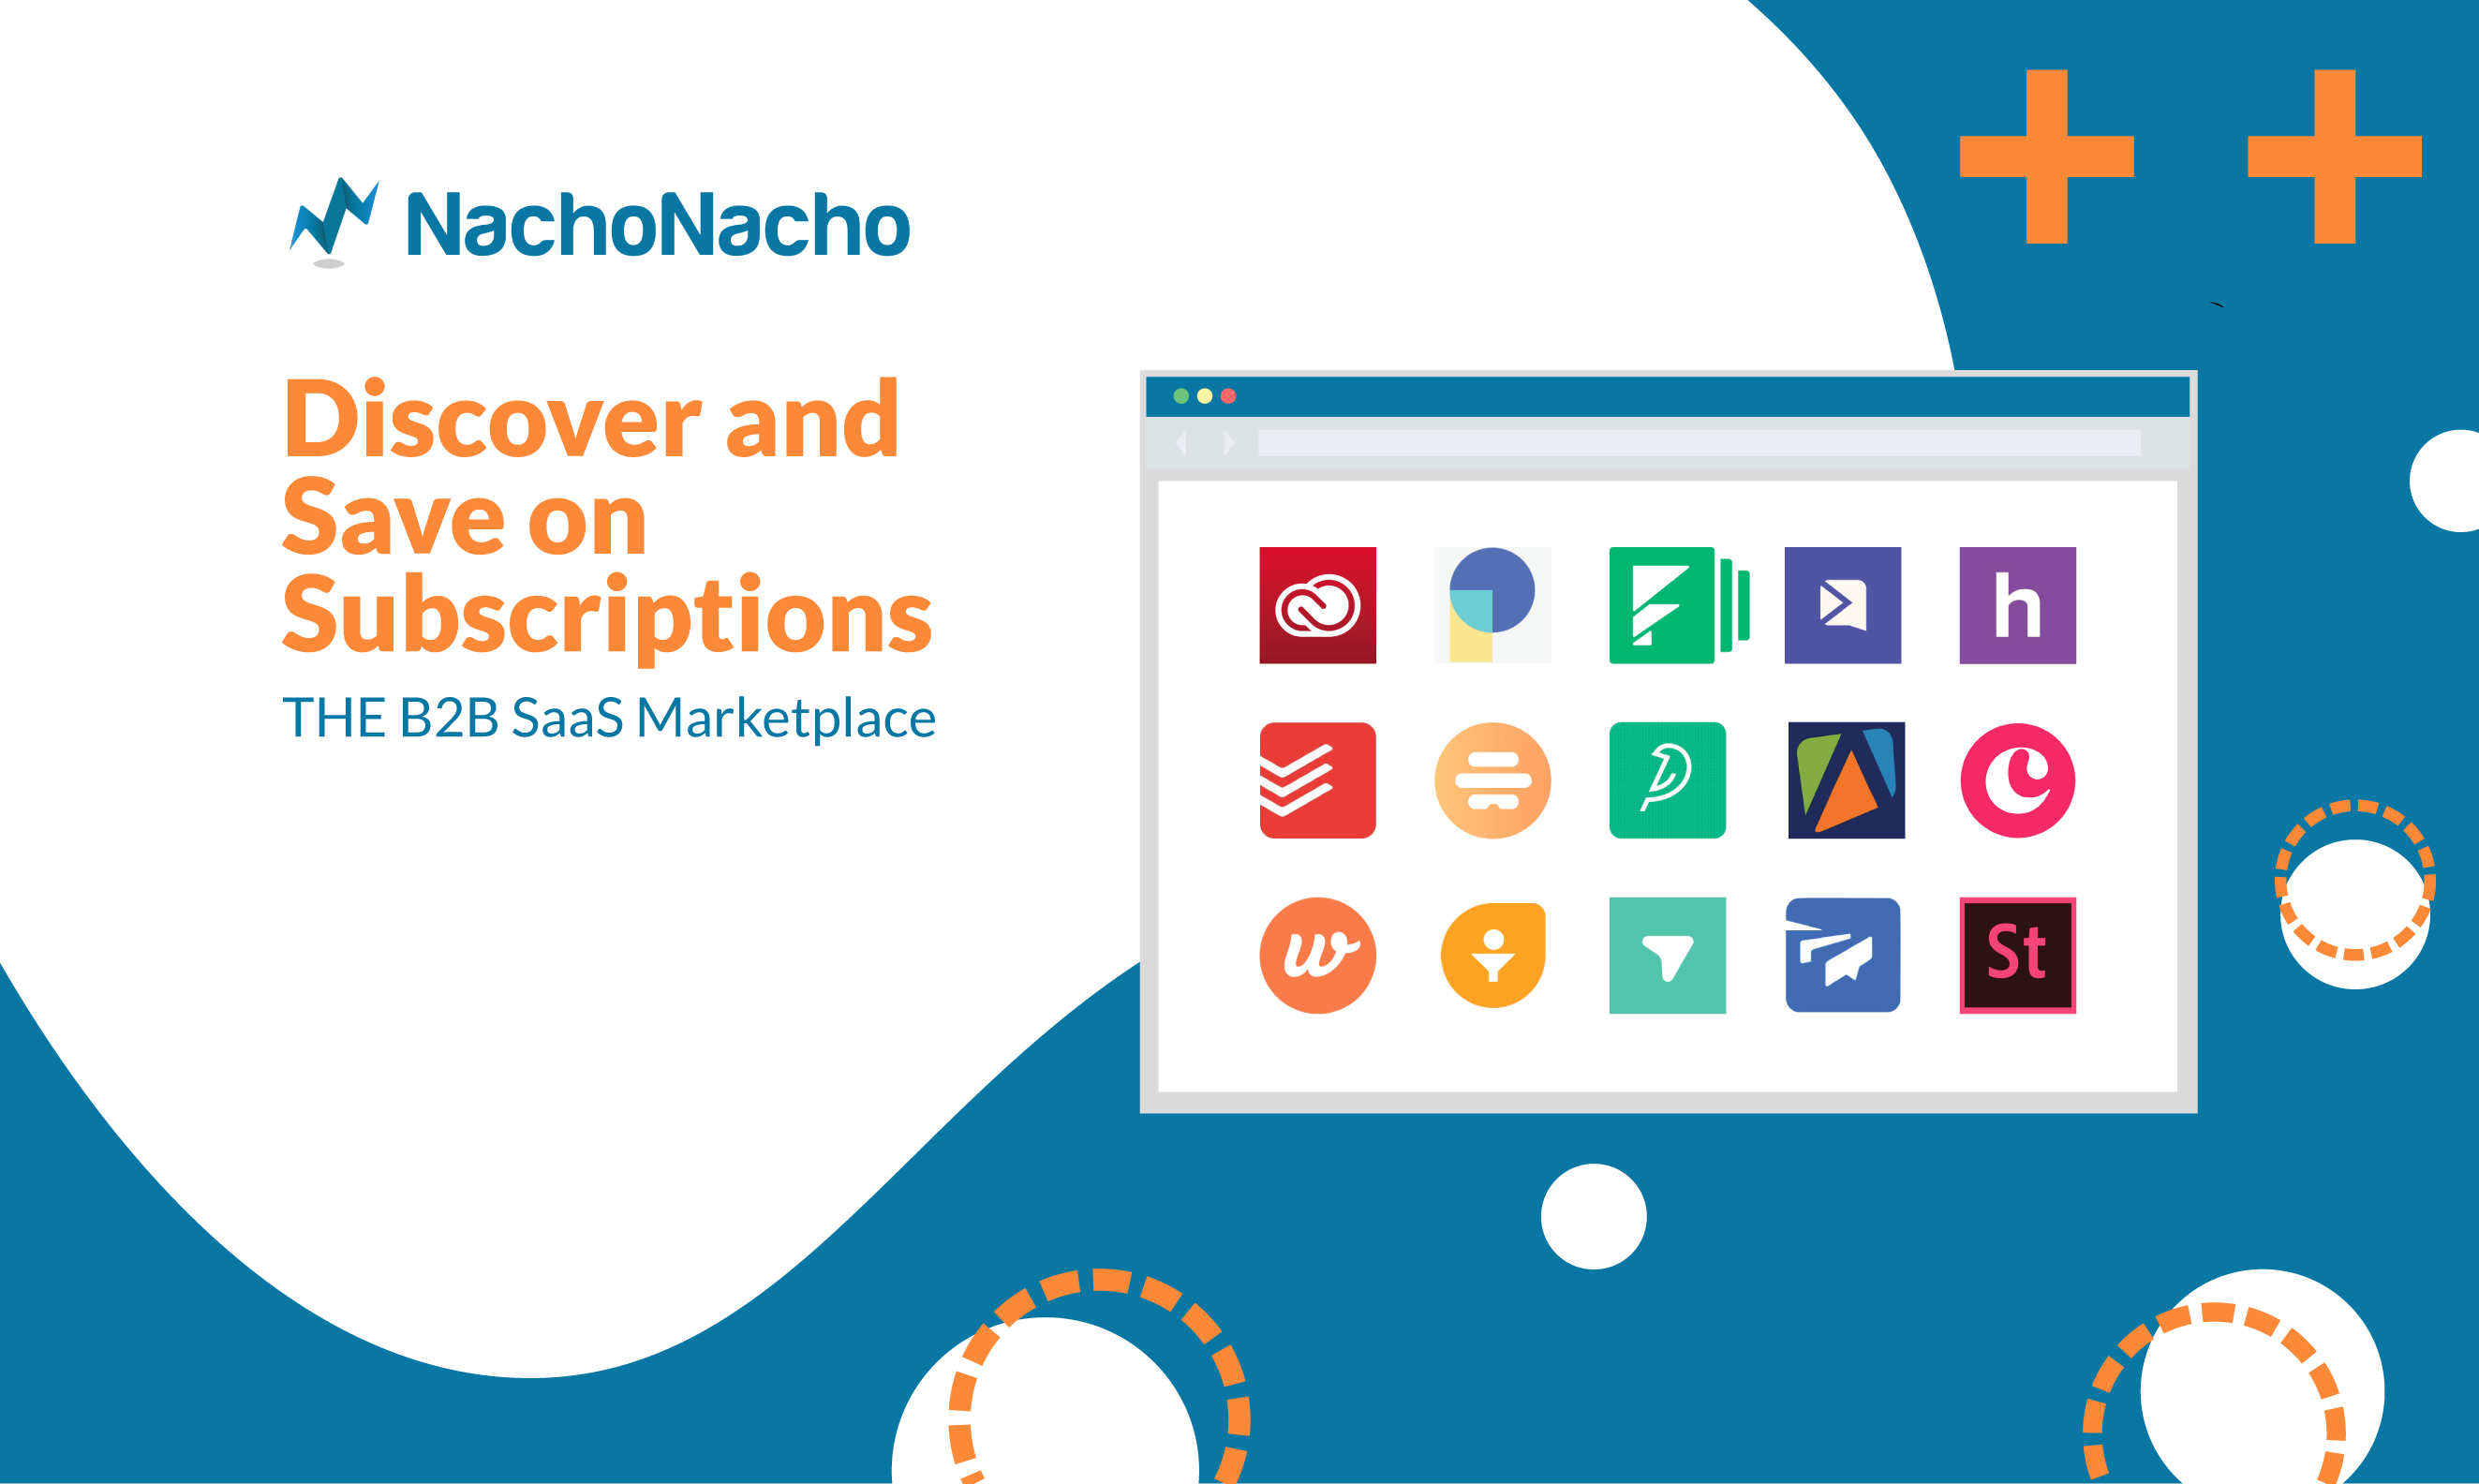 NachoNacho - Discover and save on subscriptions: the B2B SaaS Marketplace